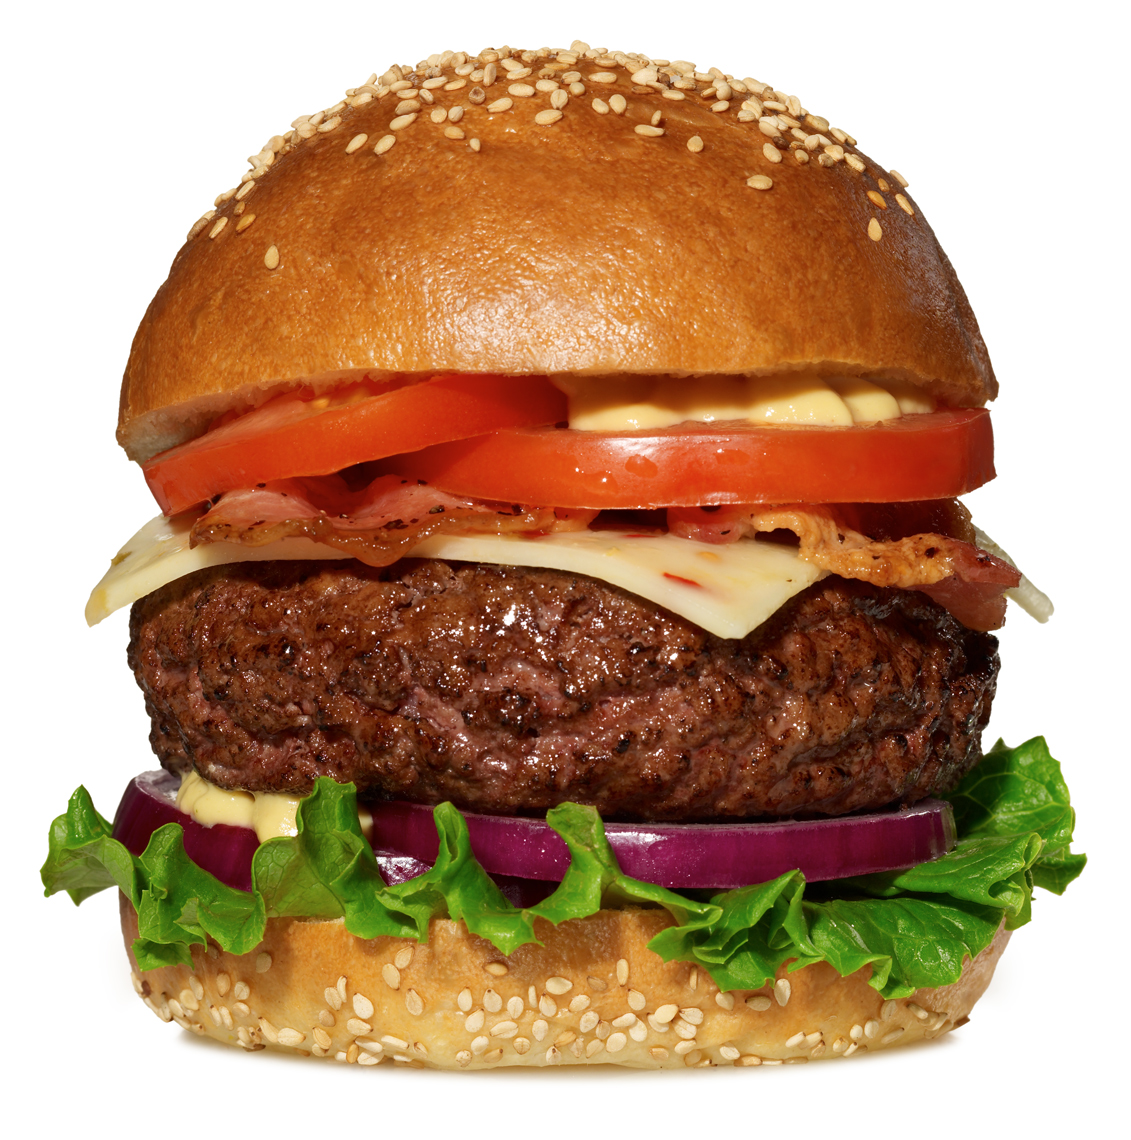 cheeseburger with tomato, lettuce and onion